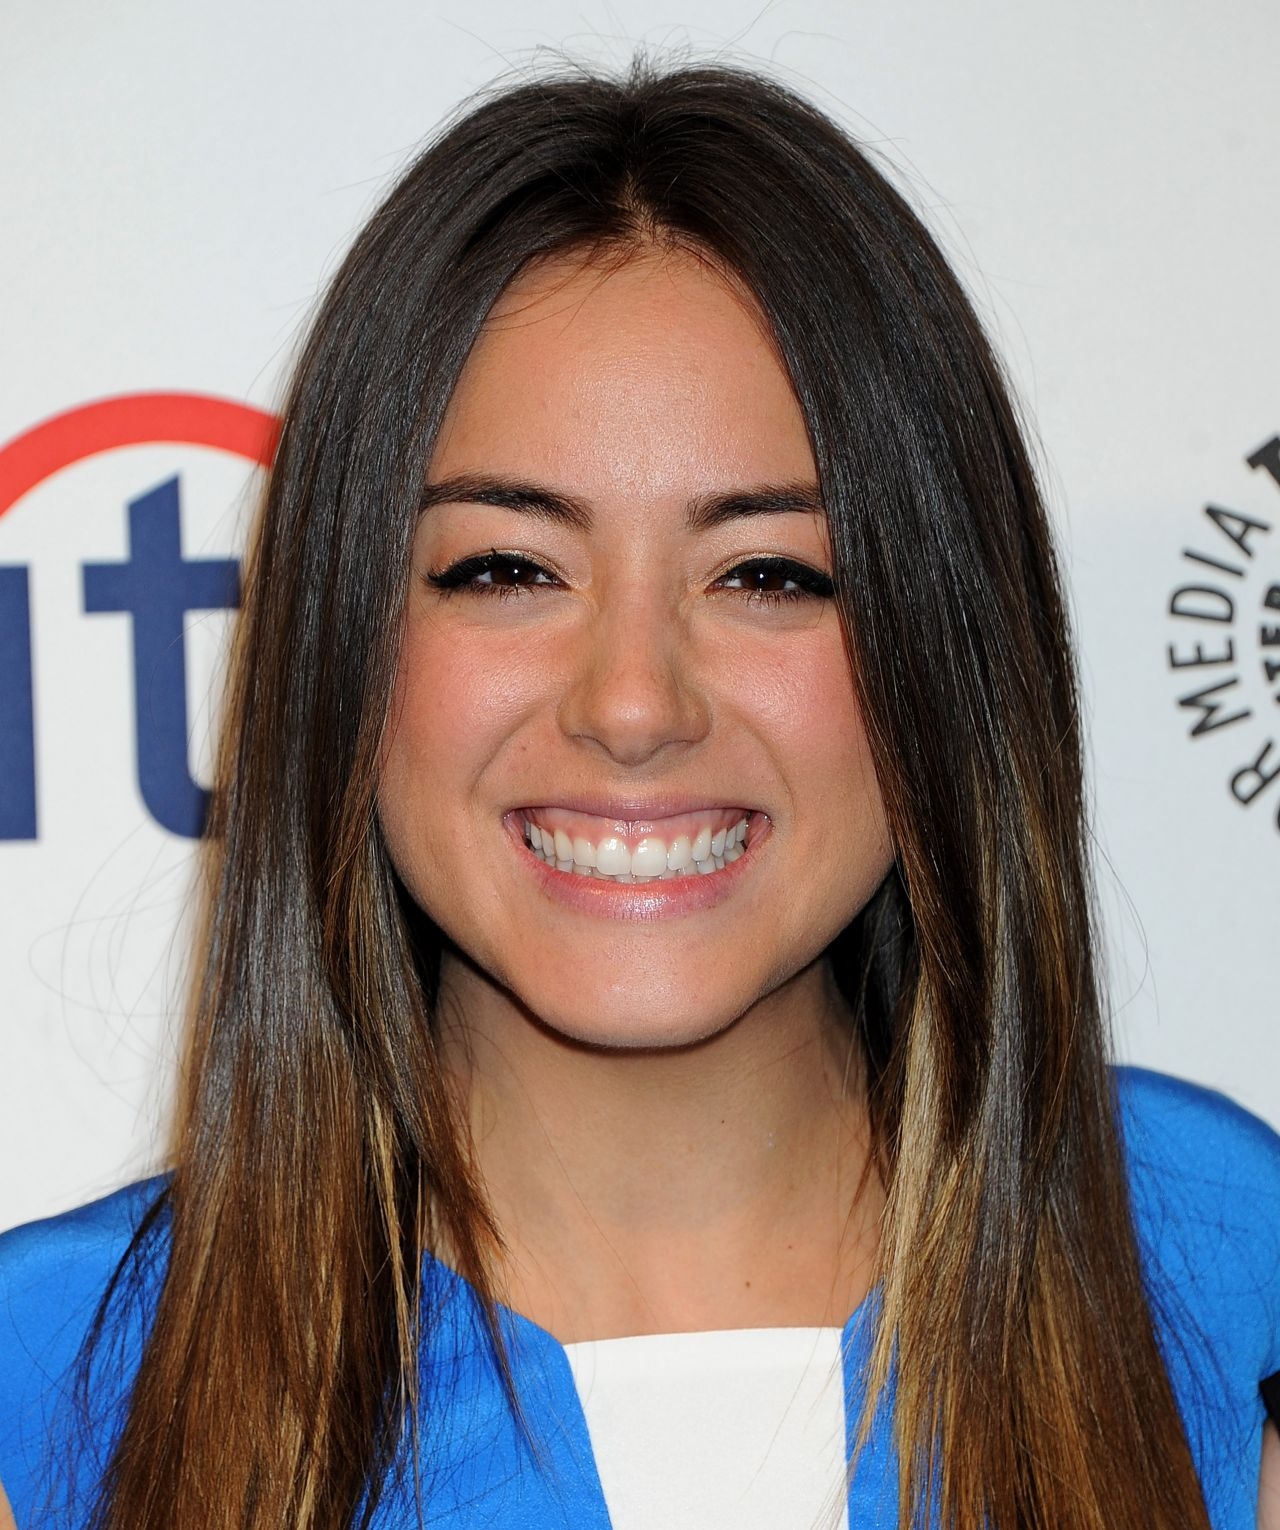 Chloe Bennet PaleyFest An Evening With The Agents Of